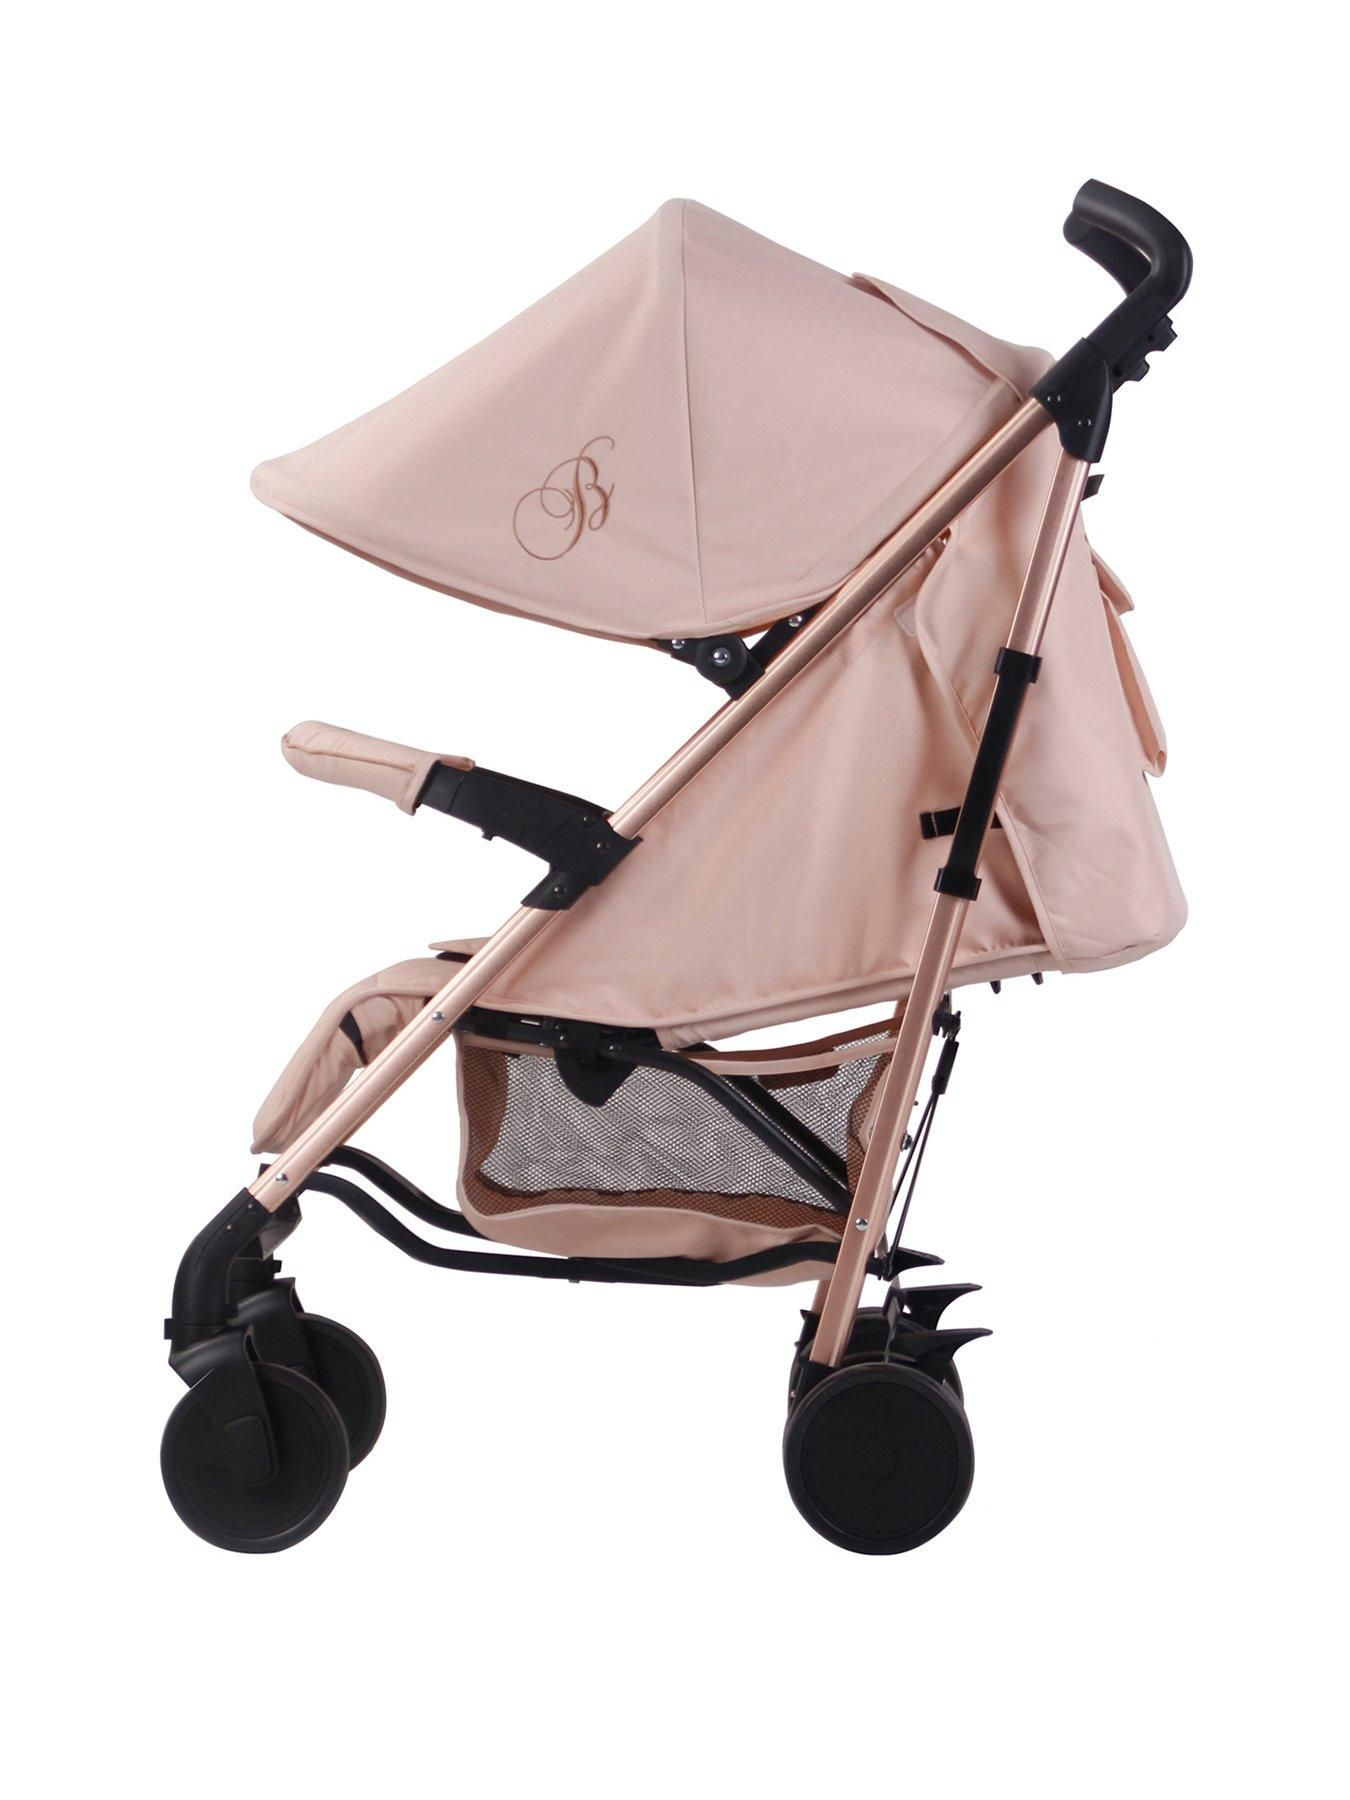 My Babiie Billie Faiers MB51 Rose Gold & Blush Stroller in